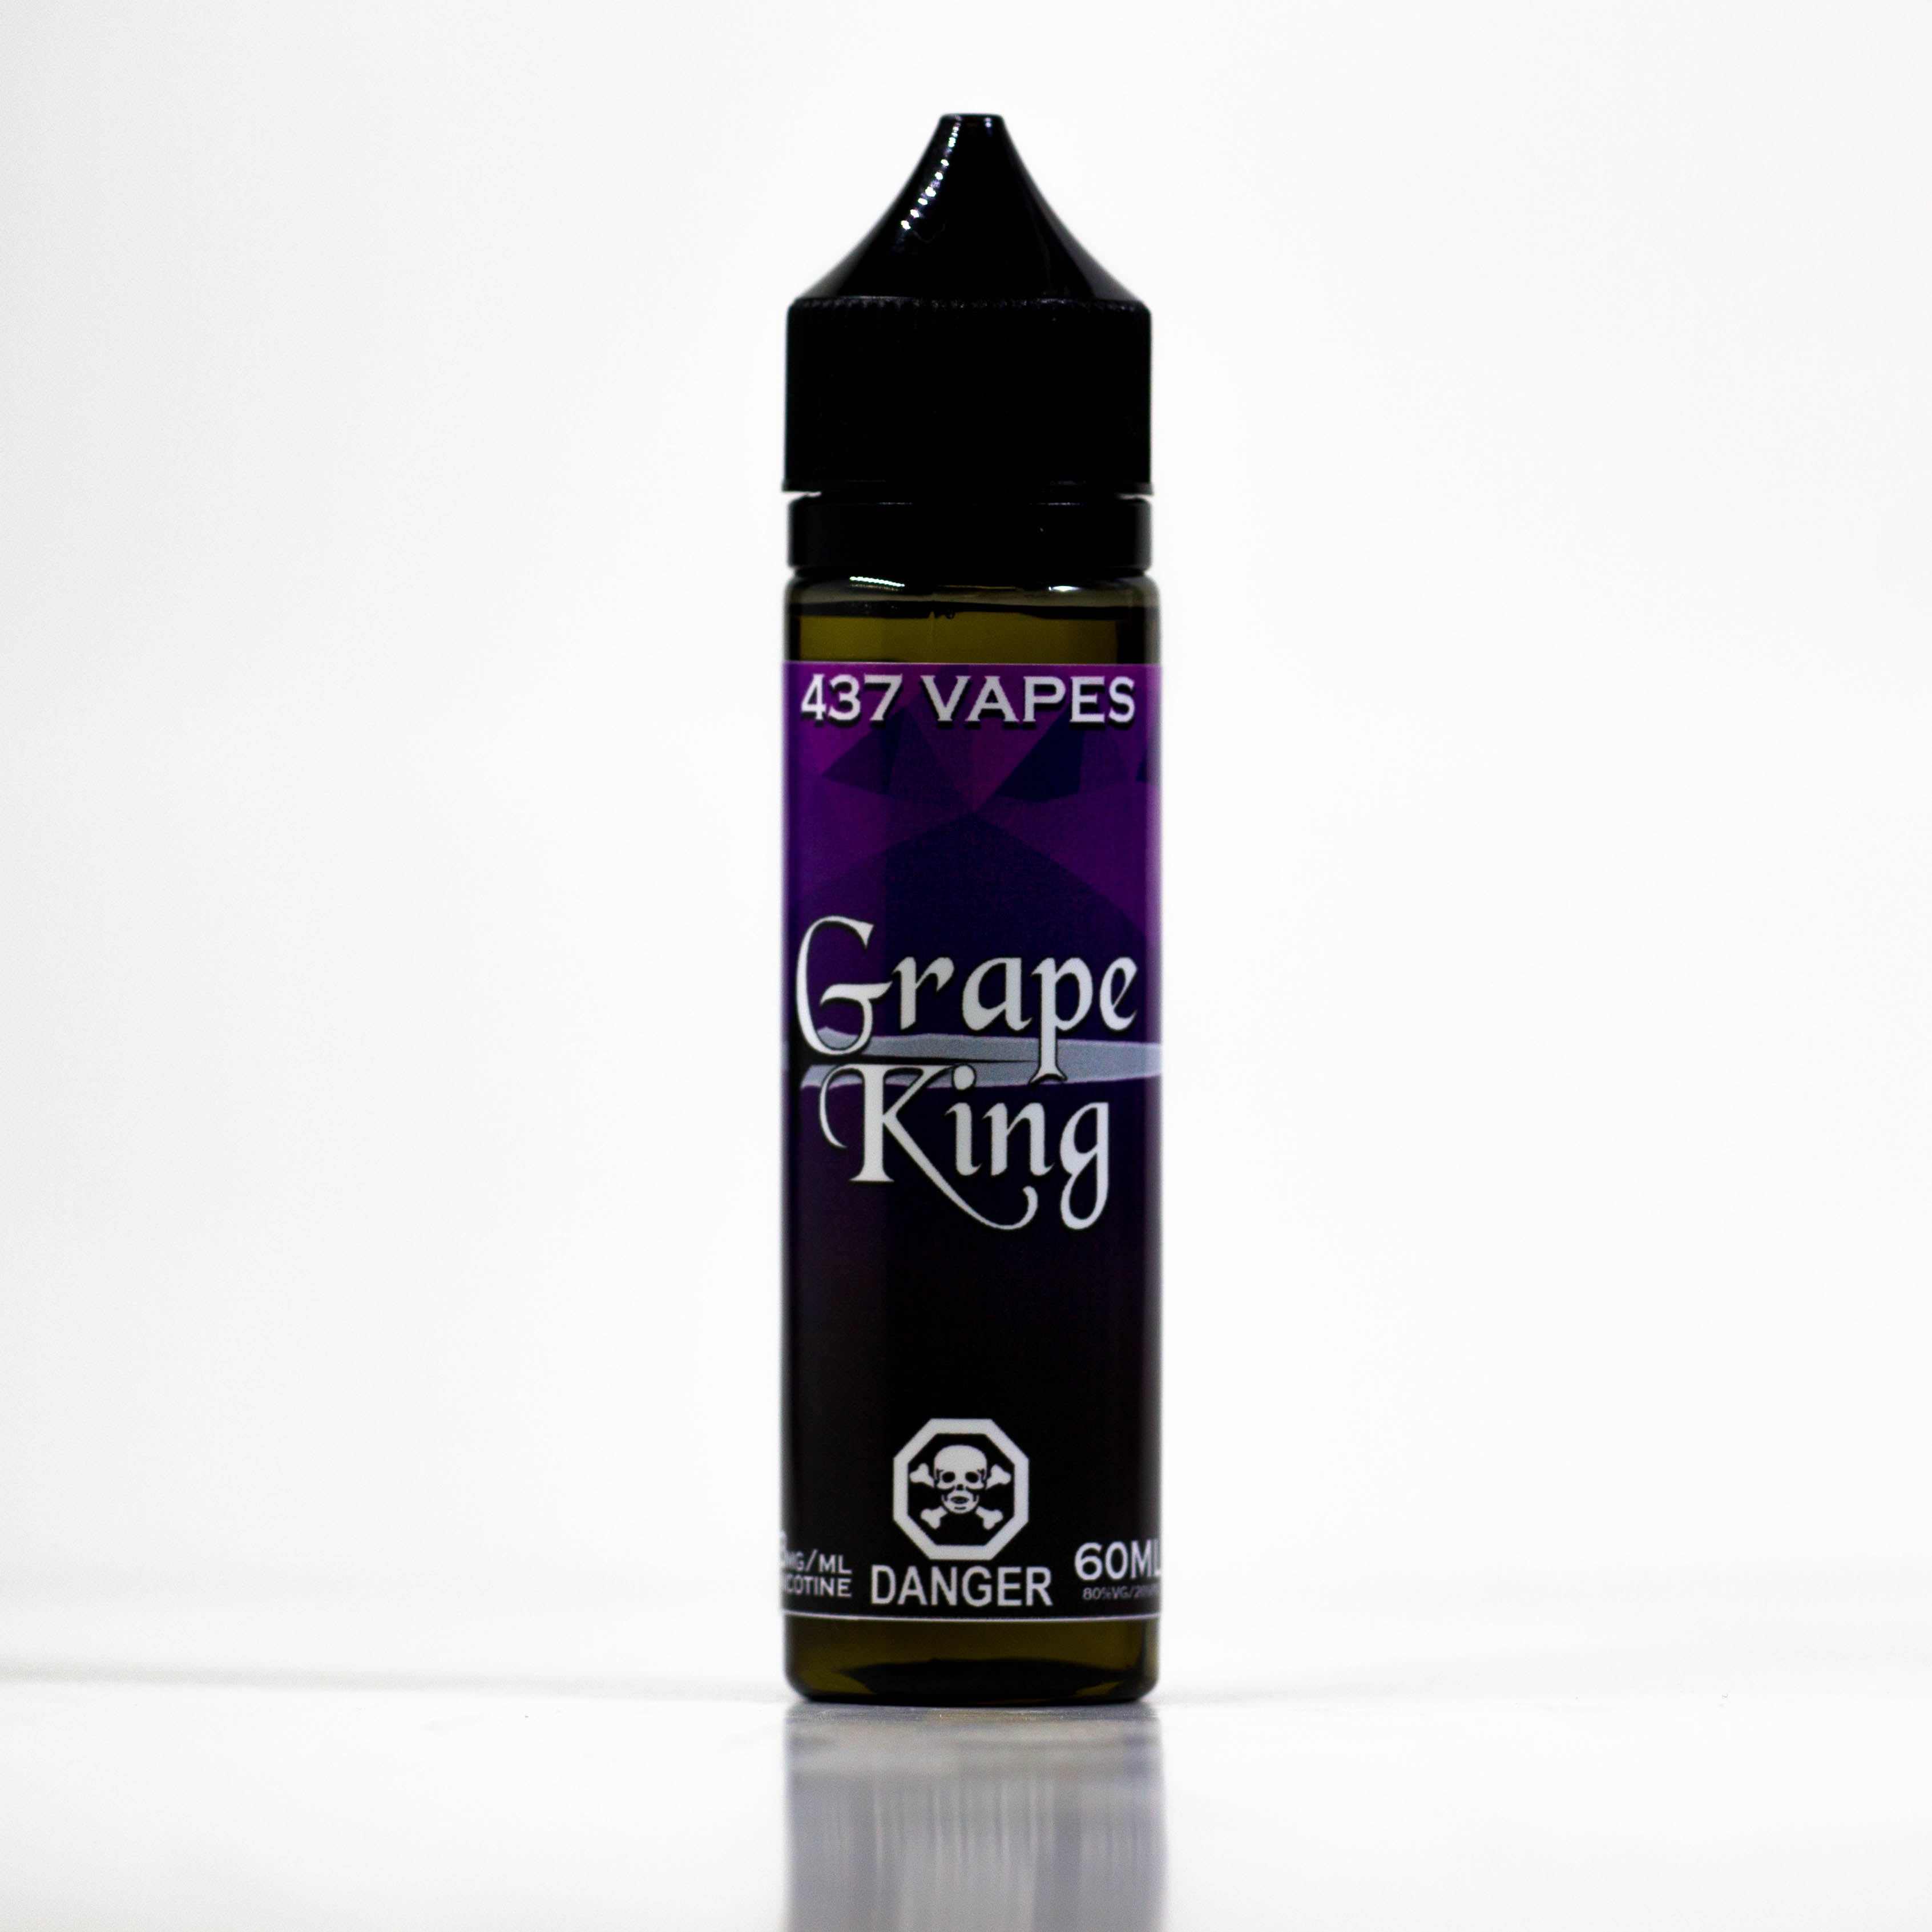 Grape King by 437 VAPES